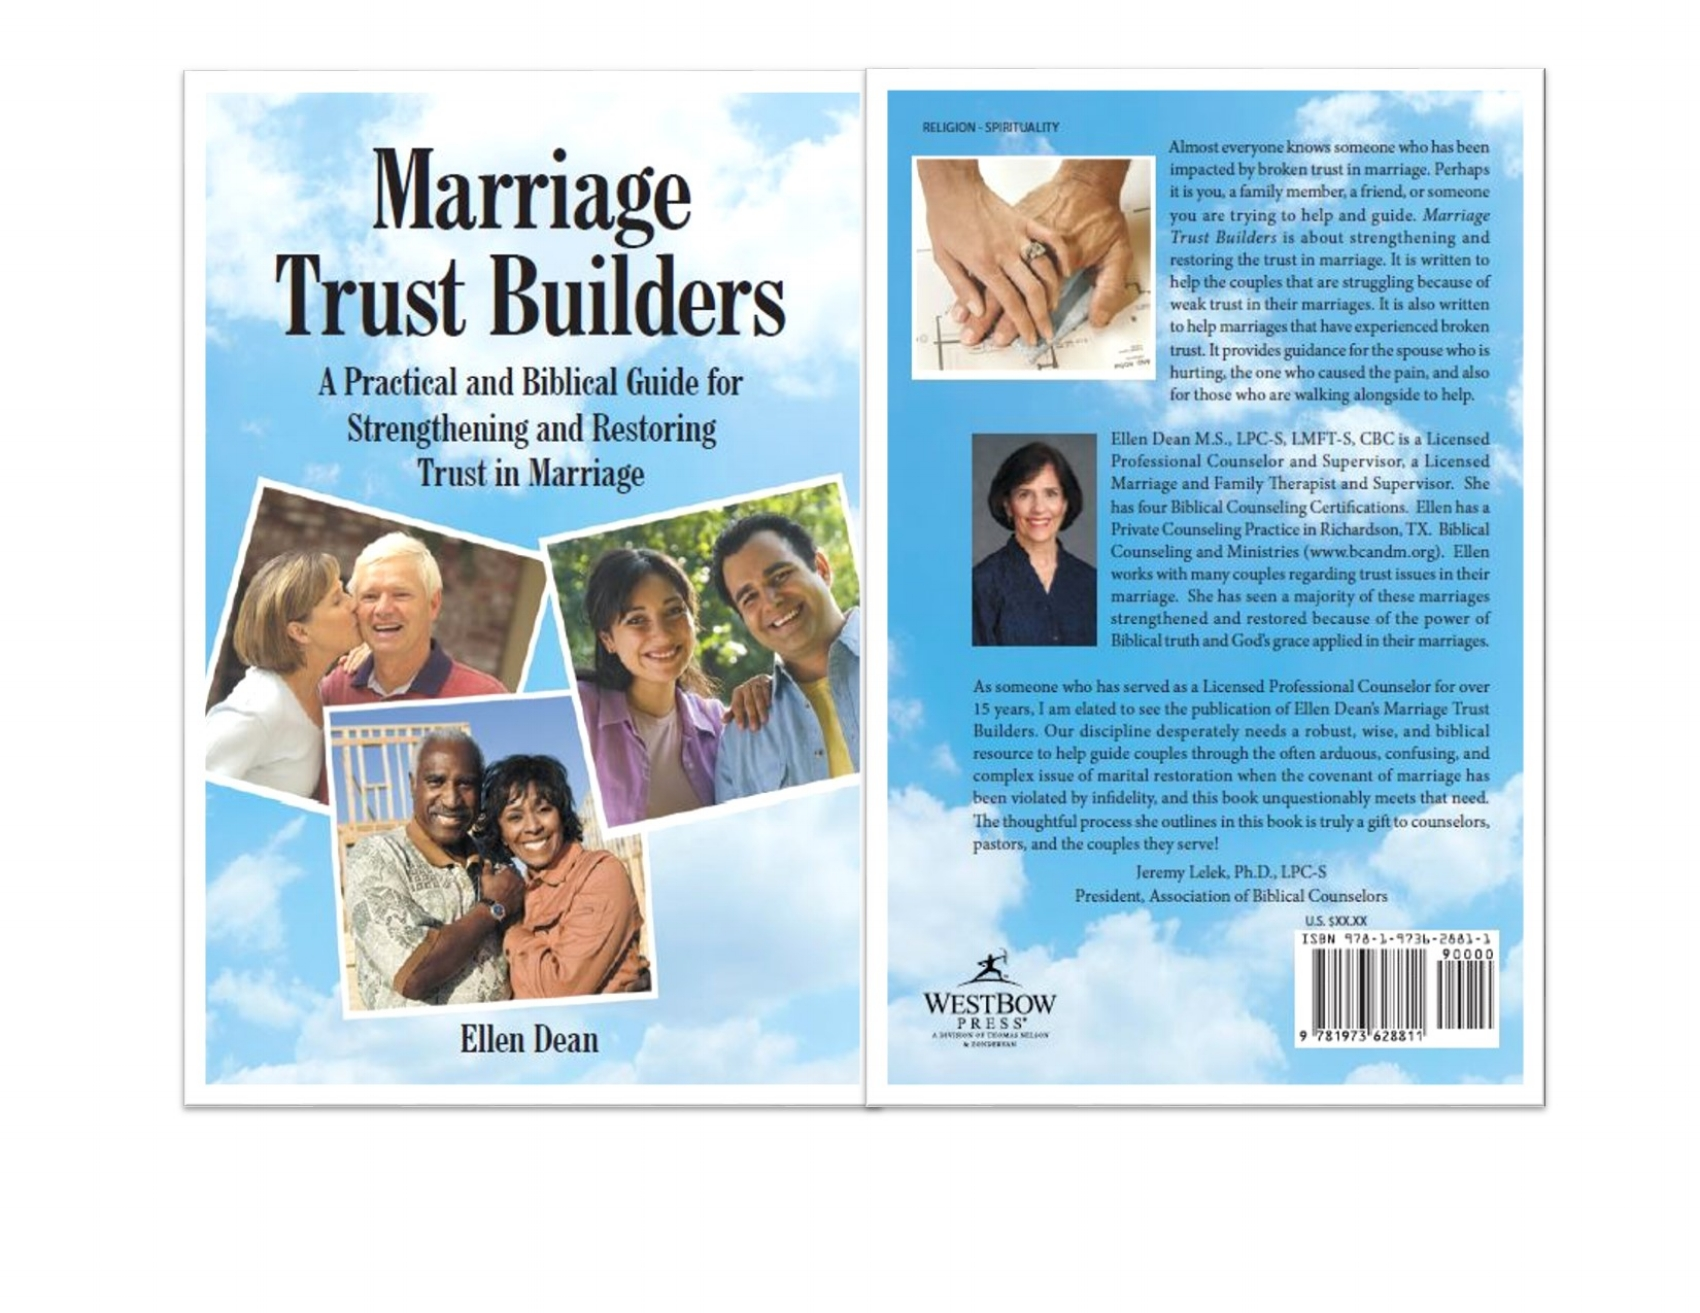 Marriage Trust Builders: A Practical and Biblical Guide for Strengthening and Restoring Trust in Marriage    Regular Price $19.95 plus tax. When you order through this website, you automatically get $2.00 off.   How to Order   Credit card by phone:  Call 972-231-0808 to place your order.    Mail in your order:   Biblical Counseling and Ministries  1105 Hampshire Ln  Richardson, TX 75080-4306